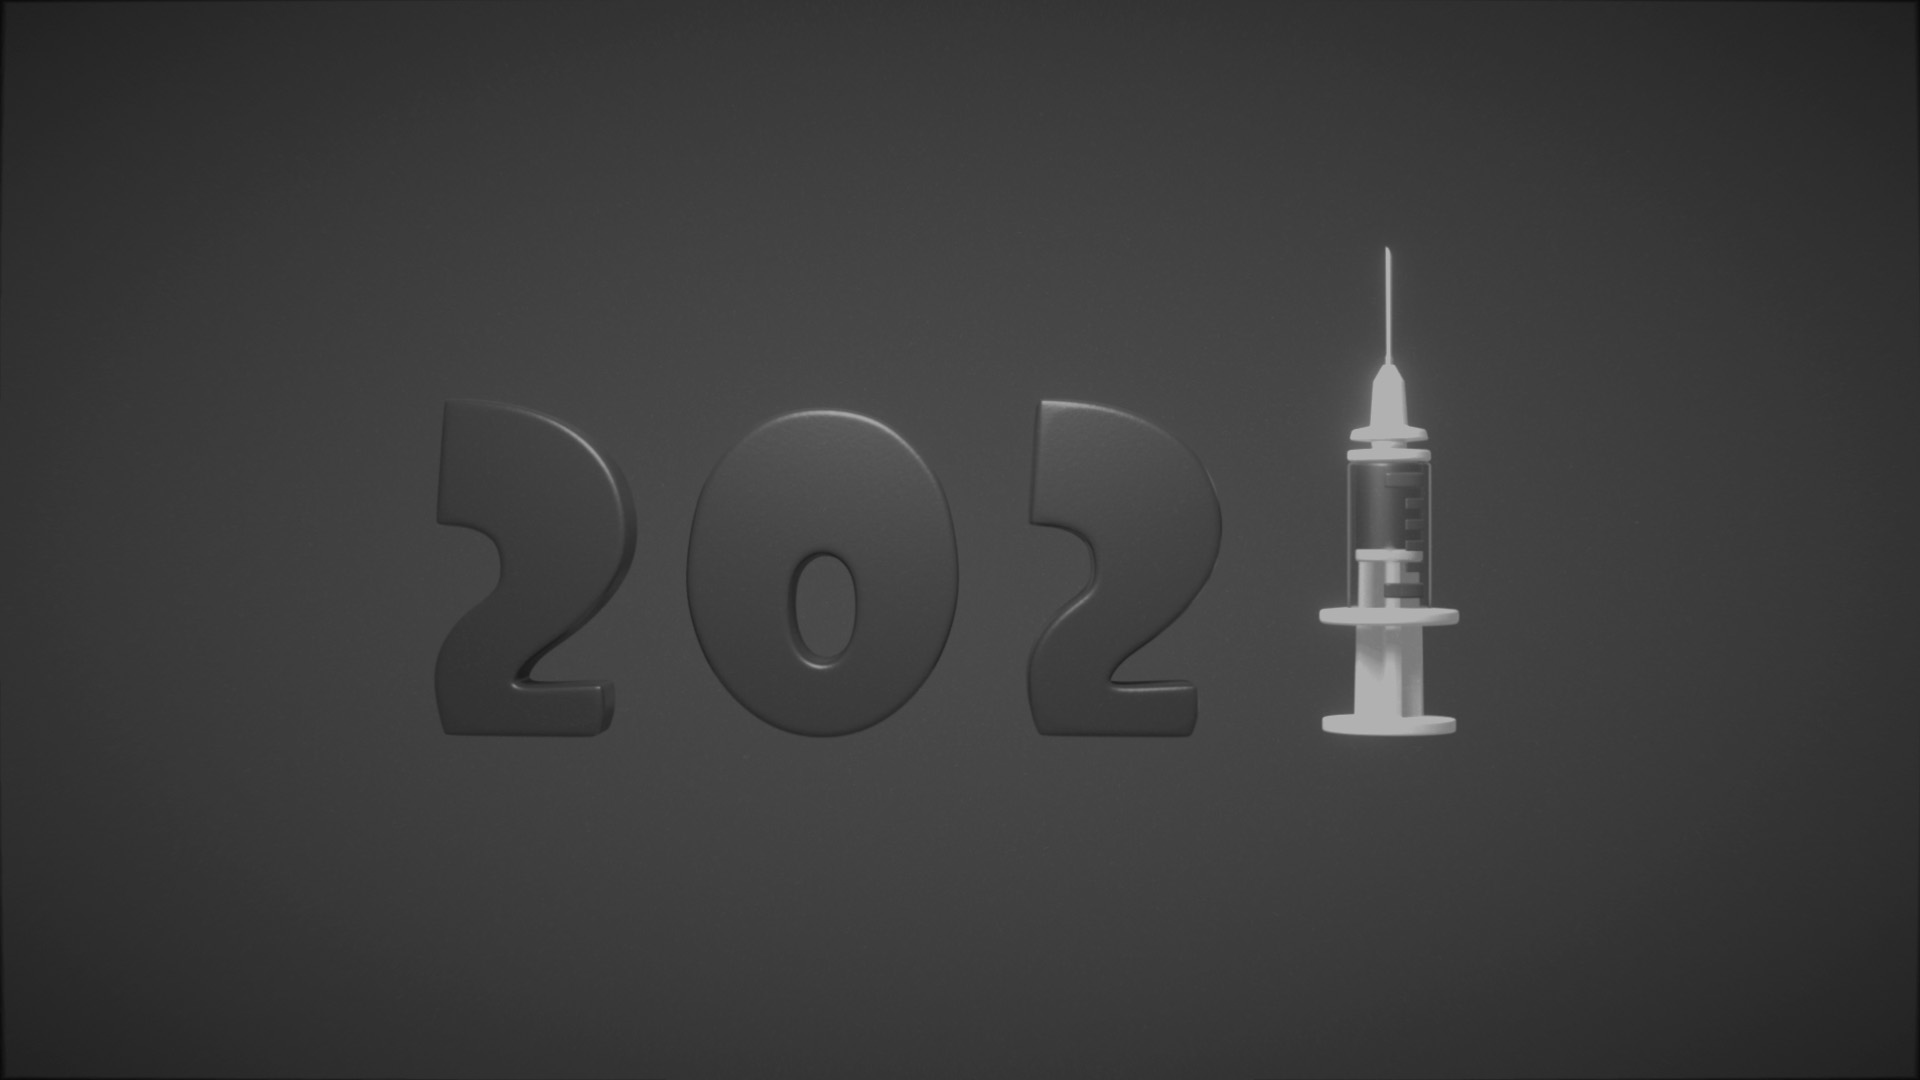 2021 covid animation black and white